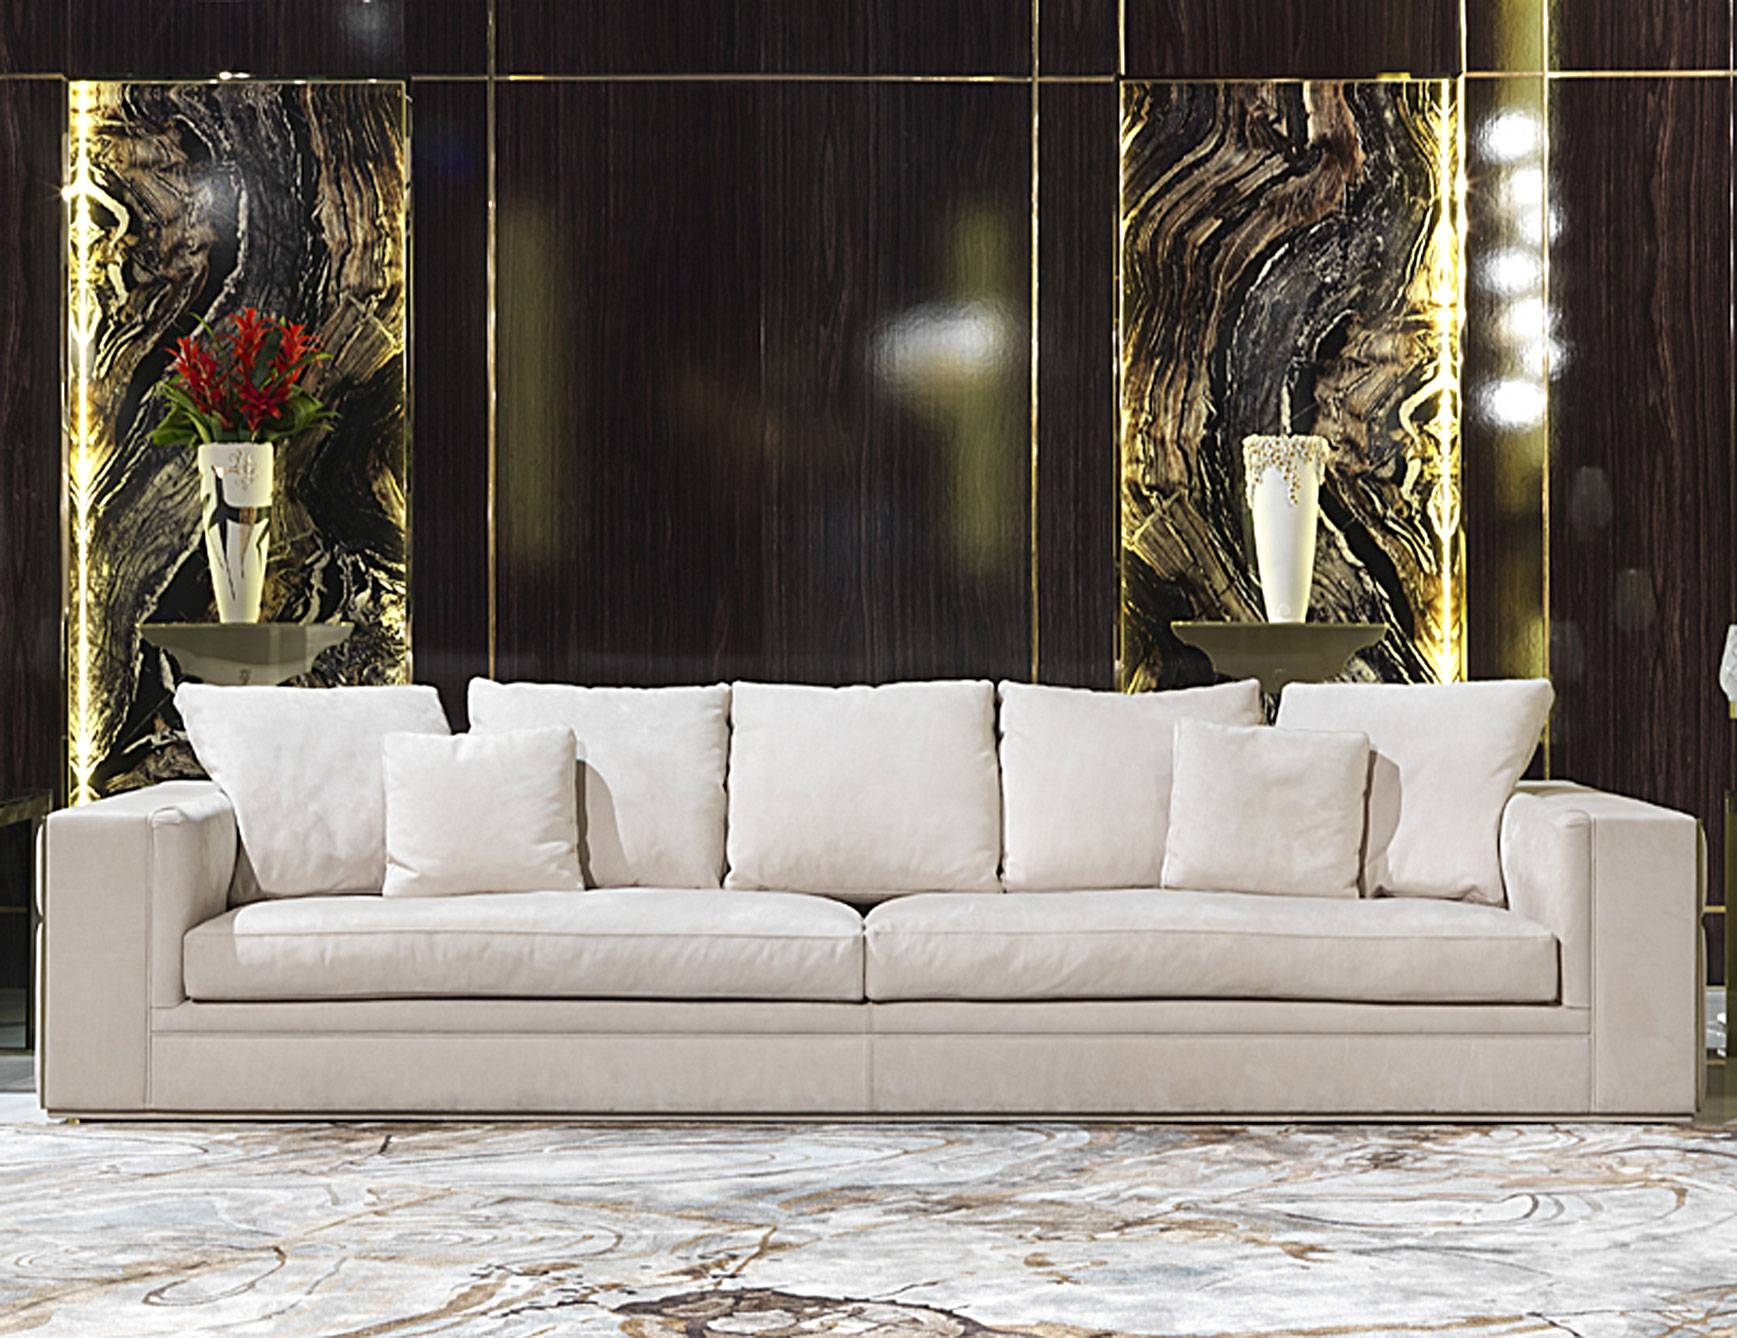 Italian Designer Luxury High End Sofas & Sofa Chairs: Nella Vetrina with regard to Sofas and Chairs (Image 9 of 30)